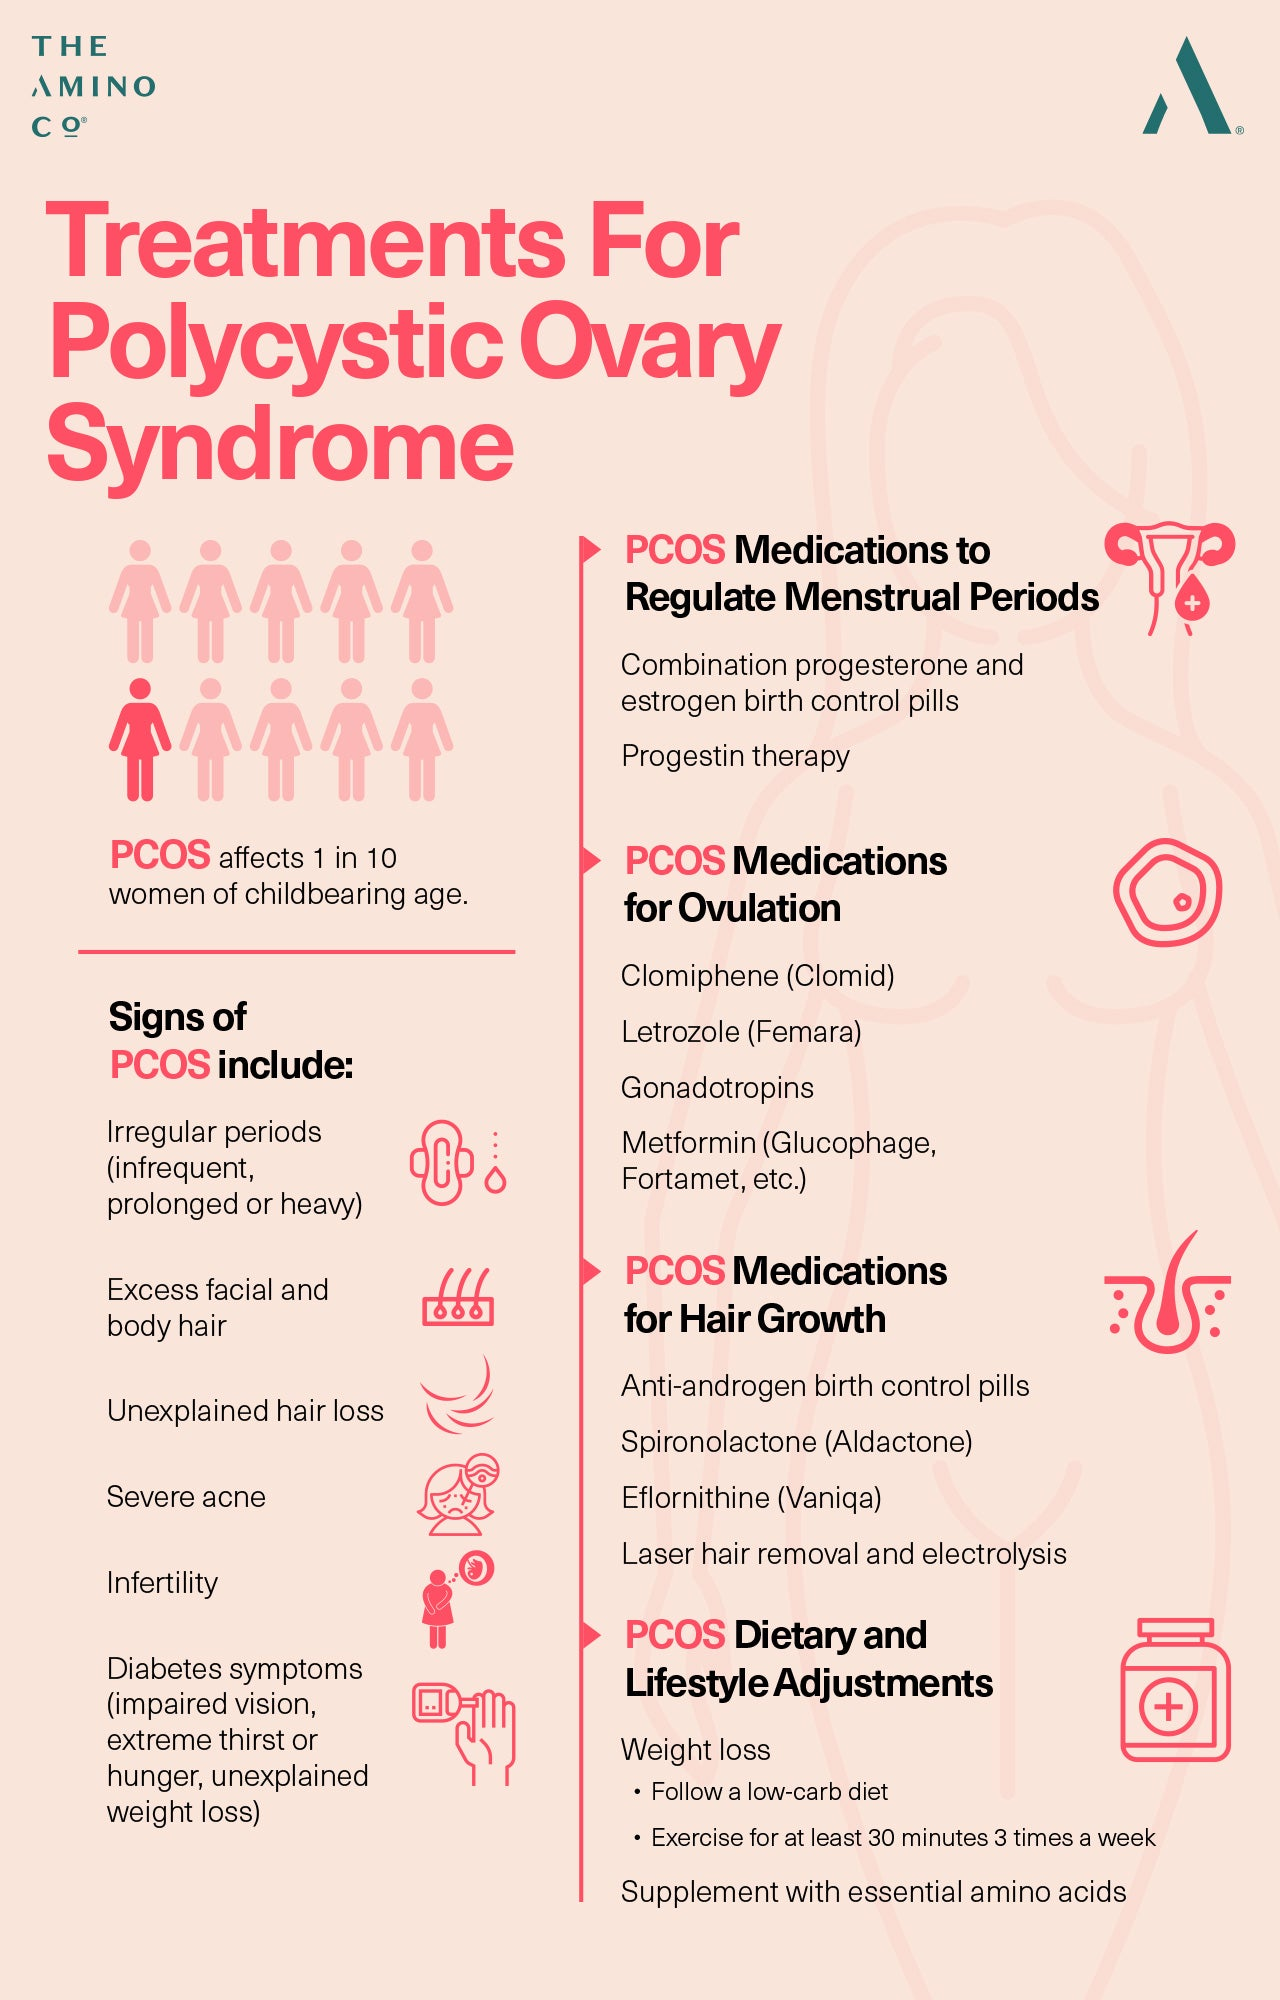 Polycystic ovary syndrome treatments